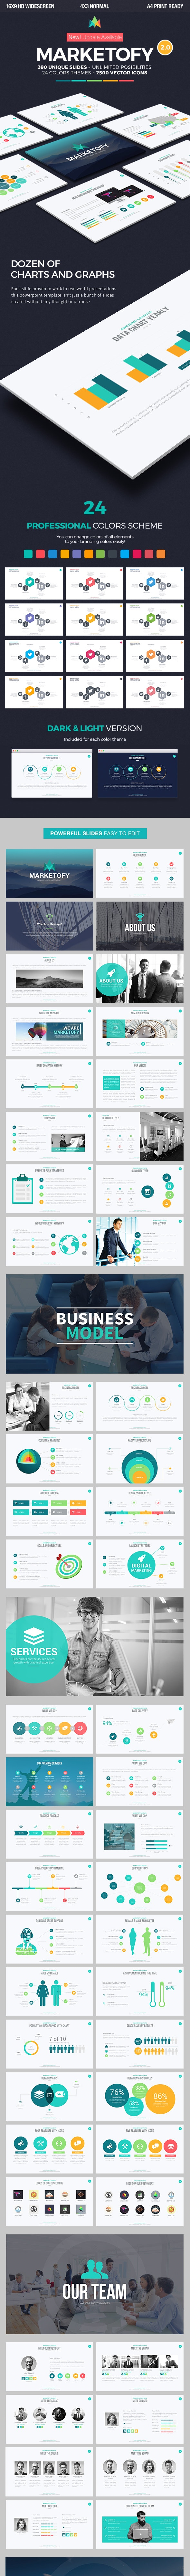 Marketofy - Ultimate PowerPoint Template - Pitch Deck PowerPoint Templates